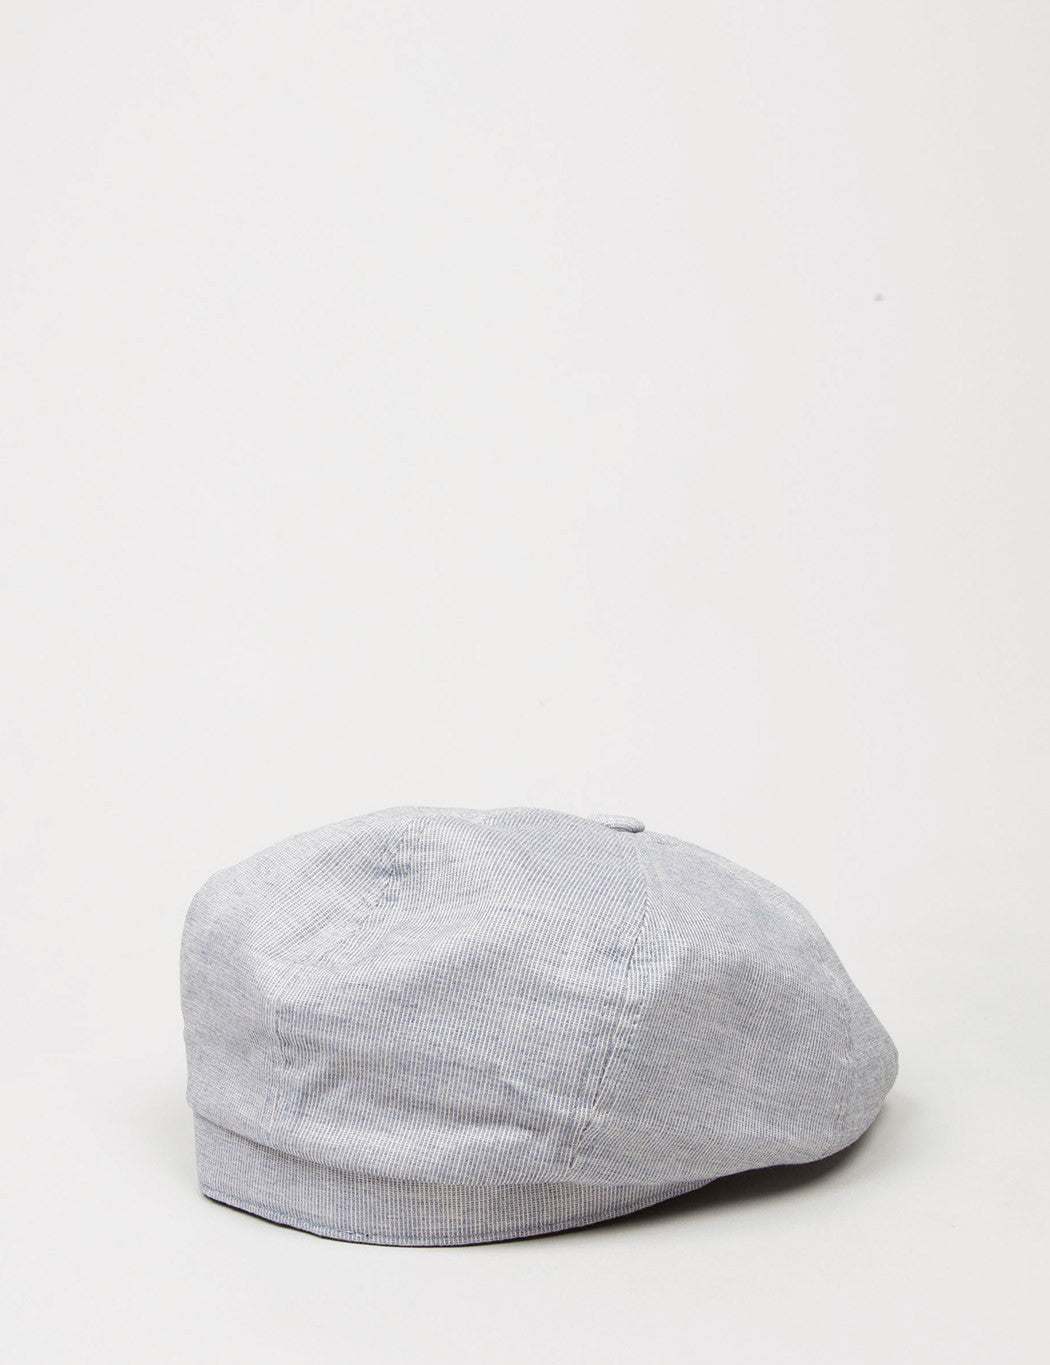 Bailey Laden Newsboy Cap - Blue Smoke